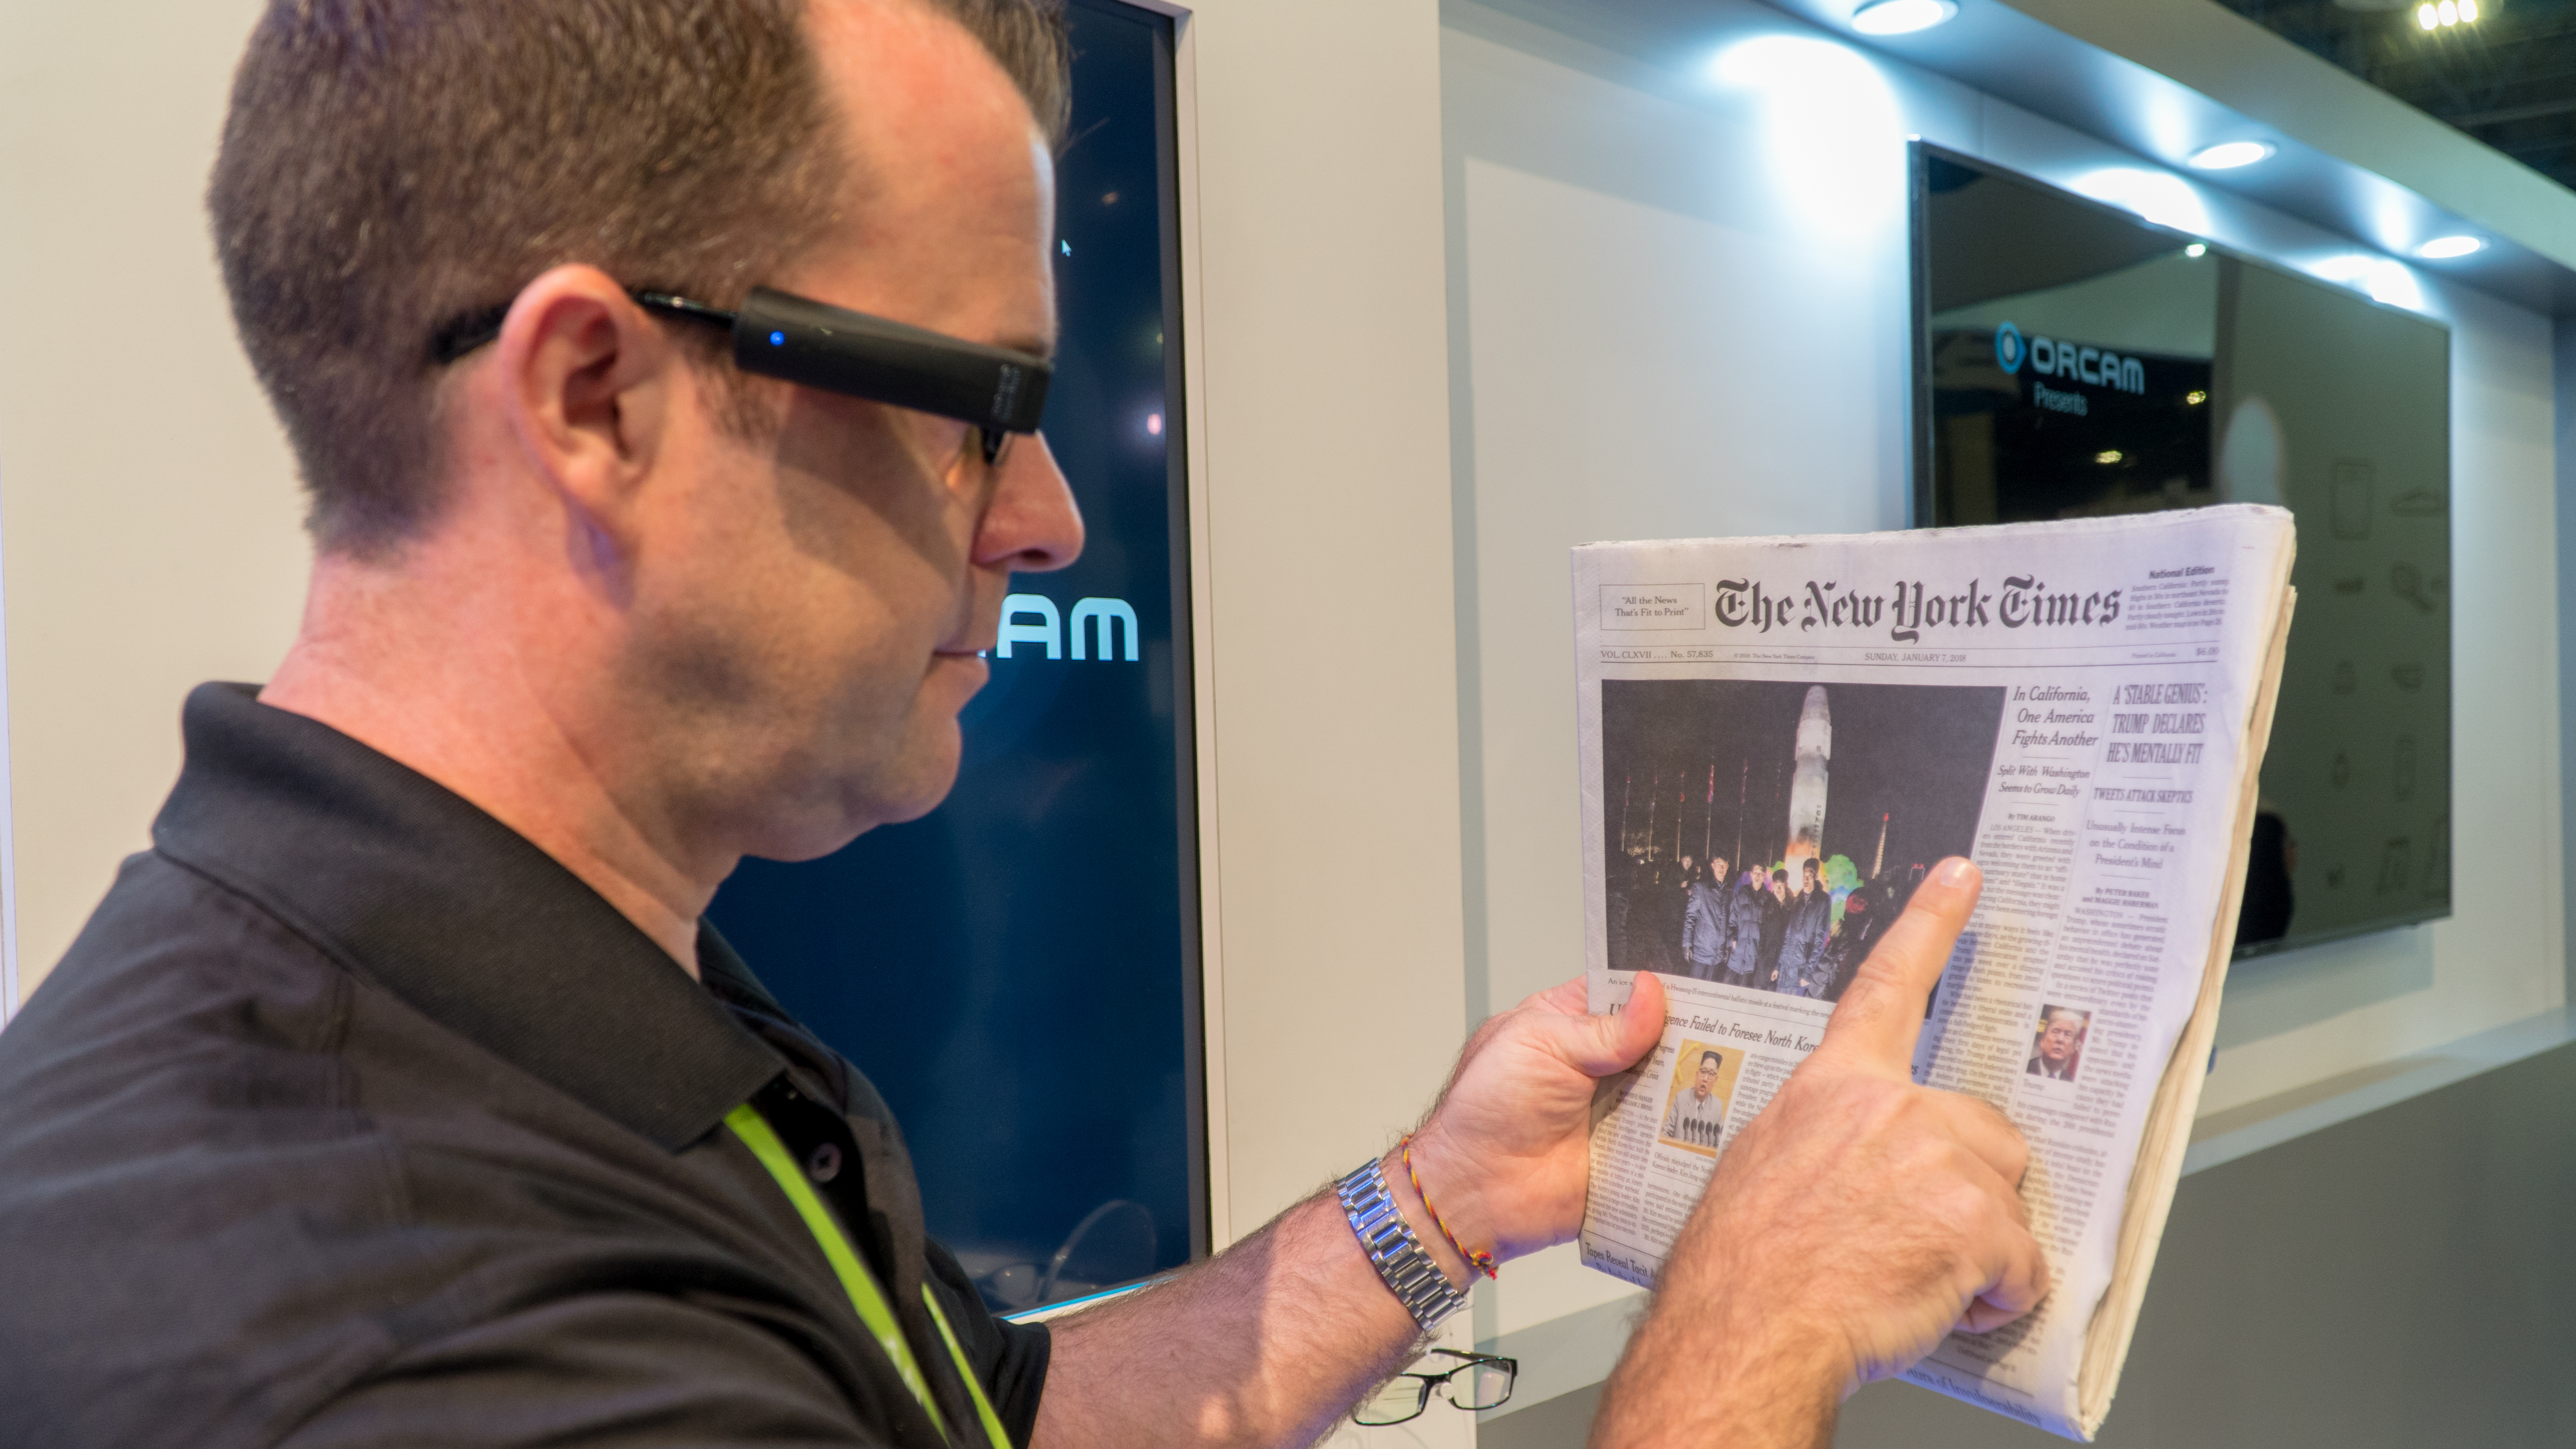 Rhys Filmer demonstrates the OrCam MyEye 2.0 at Sands Expo and Convention Center in Las Vegas on Wednesday, Jan. 10th, 2018. Photo by Yukun Zhang / BU News Service.